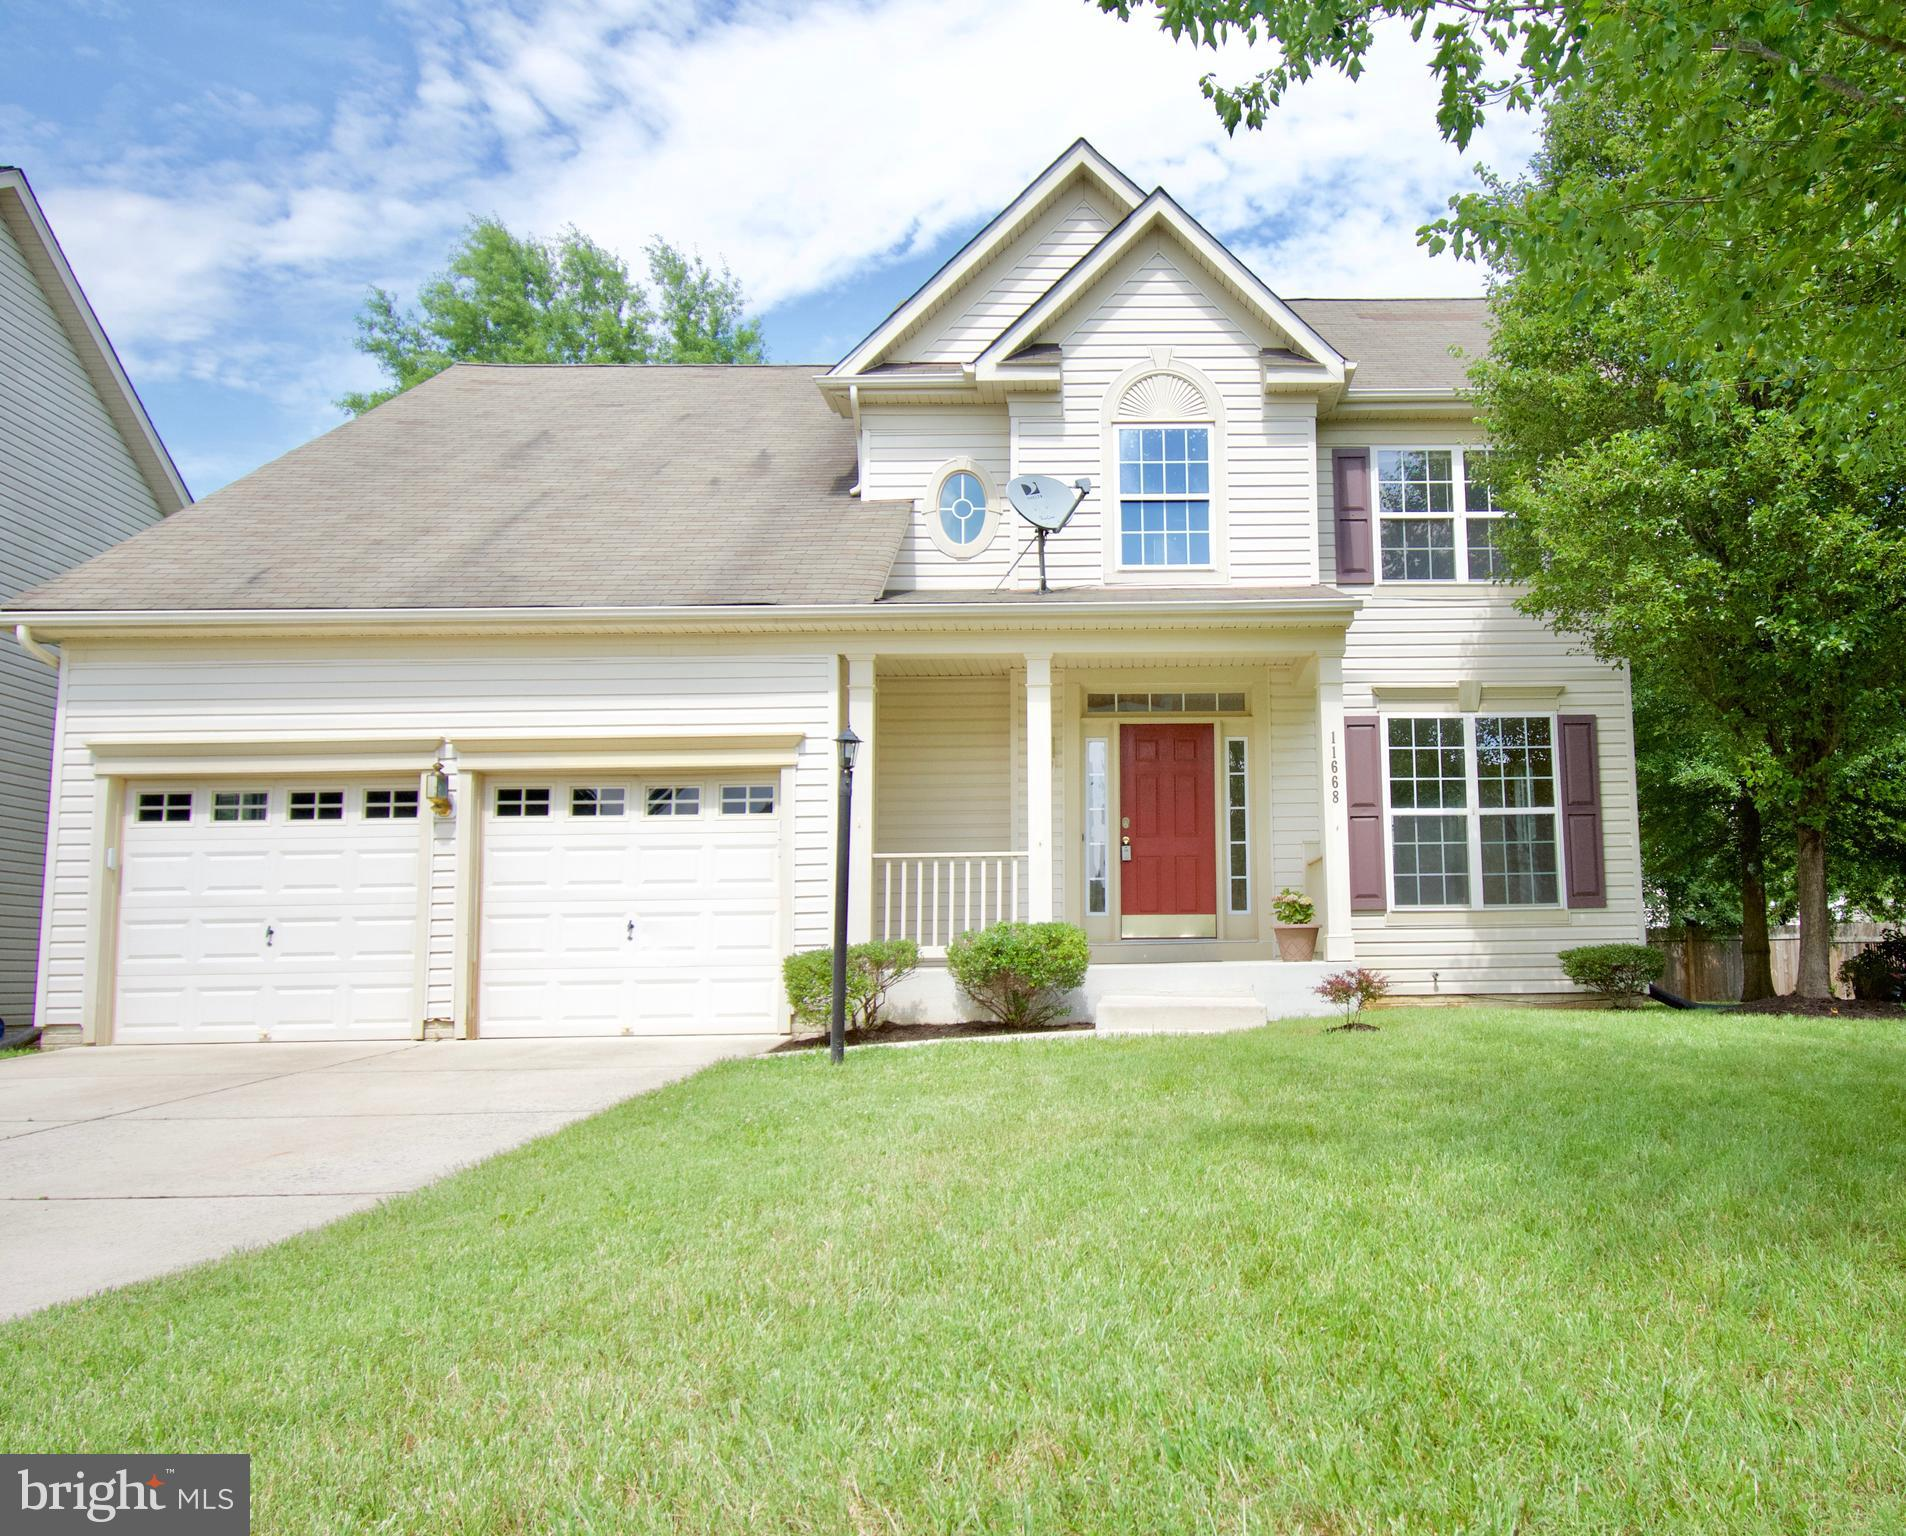 Whether you are relaxing in your sunken sitting room or enjoying the company of family and friends in the fully finished basement Rec. Room, this House has everything that you need to make it your new Home in Sheffield. You will definitely appreciate the brand new kitchen cabinets, the hardwood floors, the Upper Level Laundry Room, the Gas Fireplace,  recessed lights, and much more. Schedule your private showing Today!